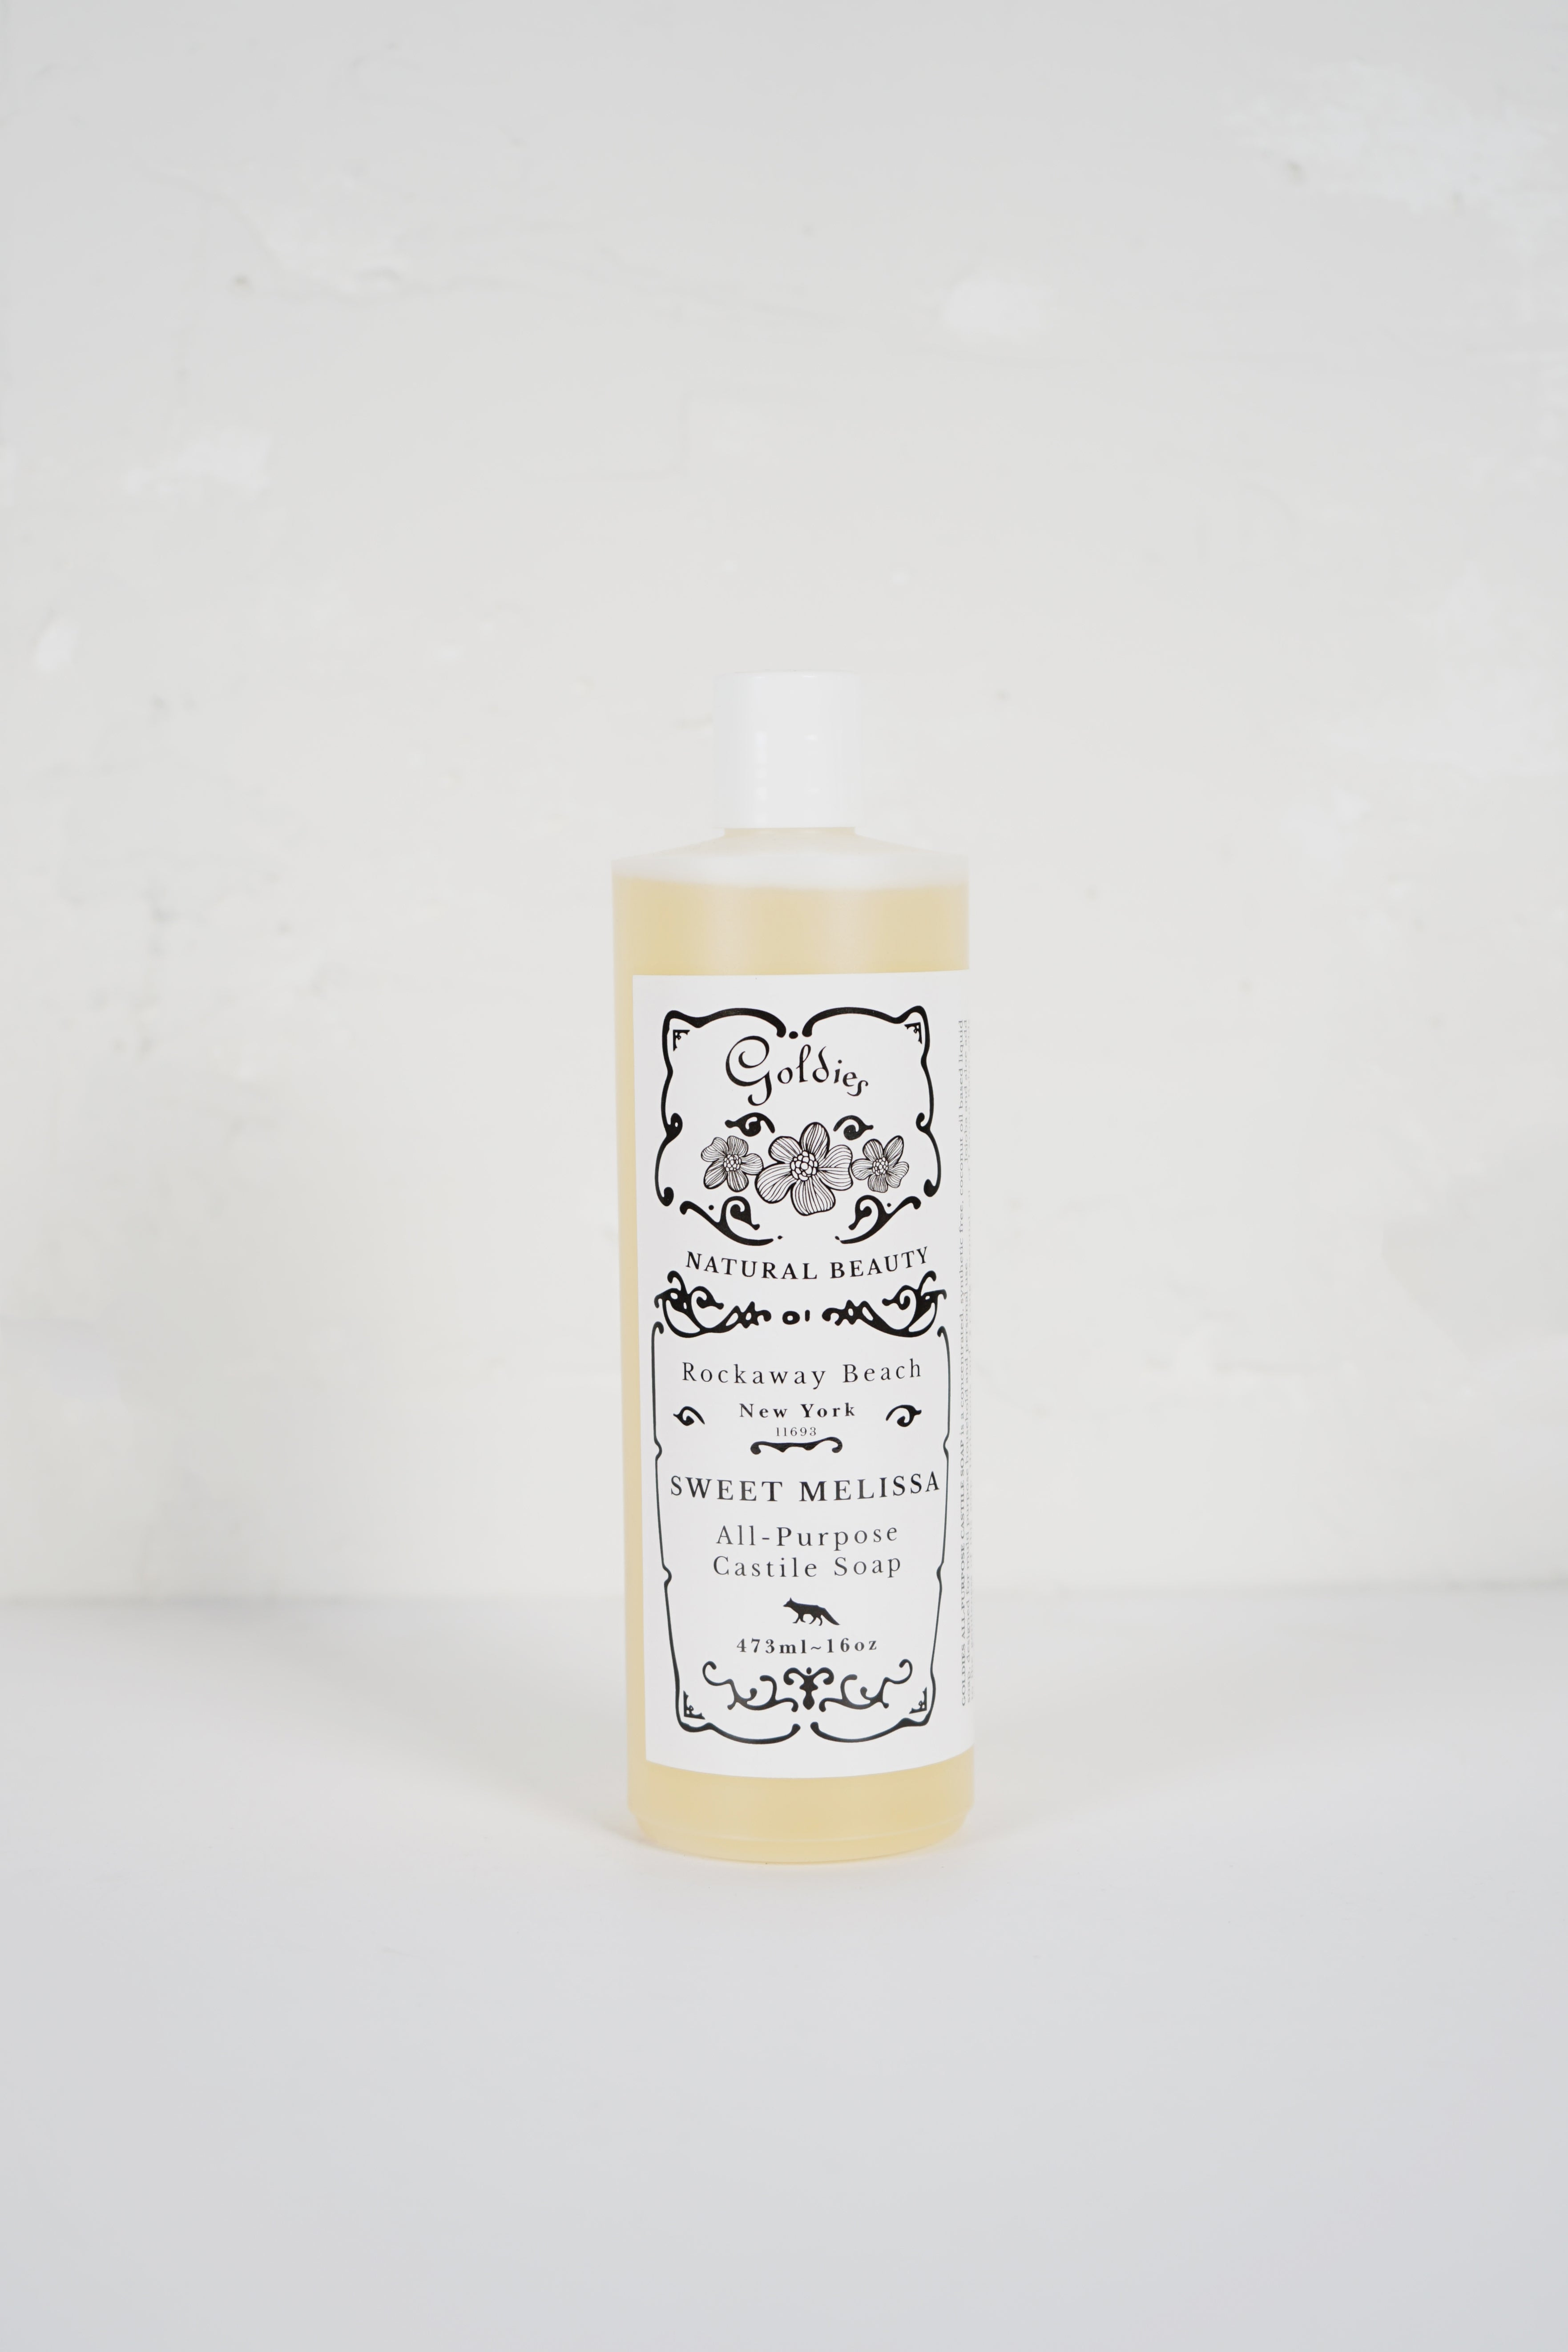 All-Purpose Castile Soap